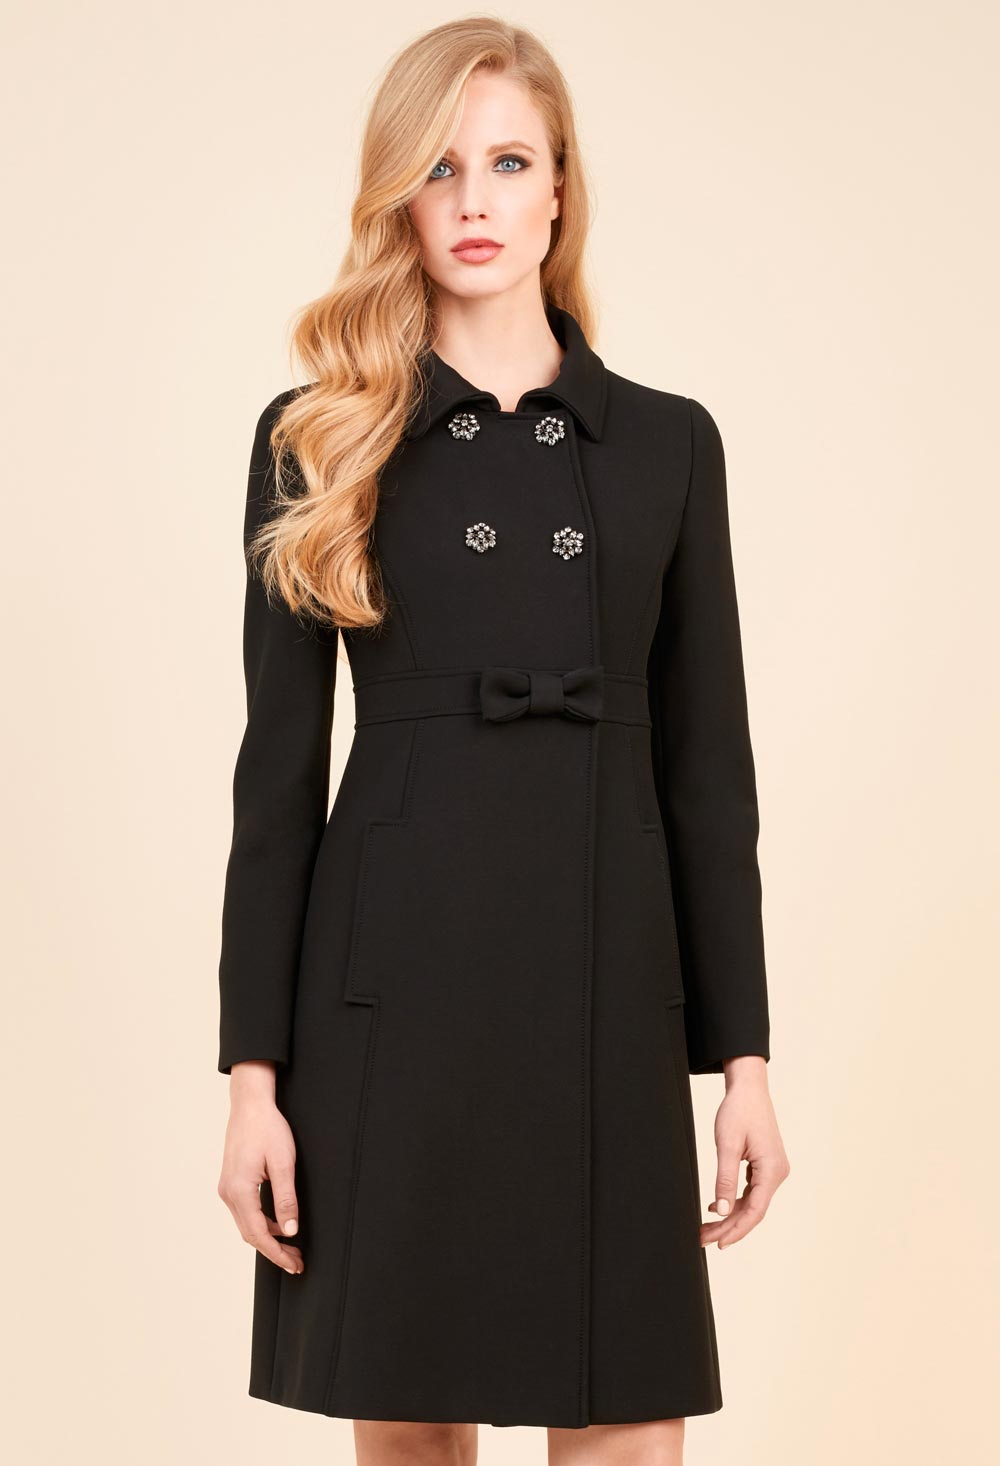 Coat with jewel buttons